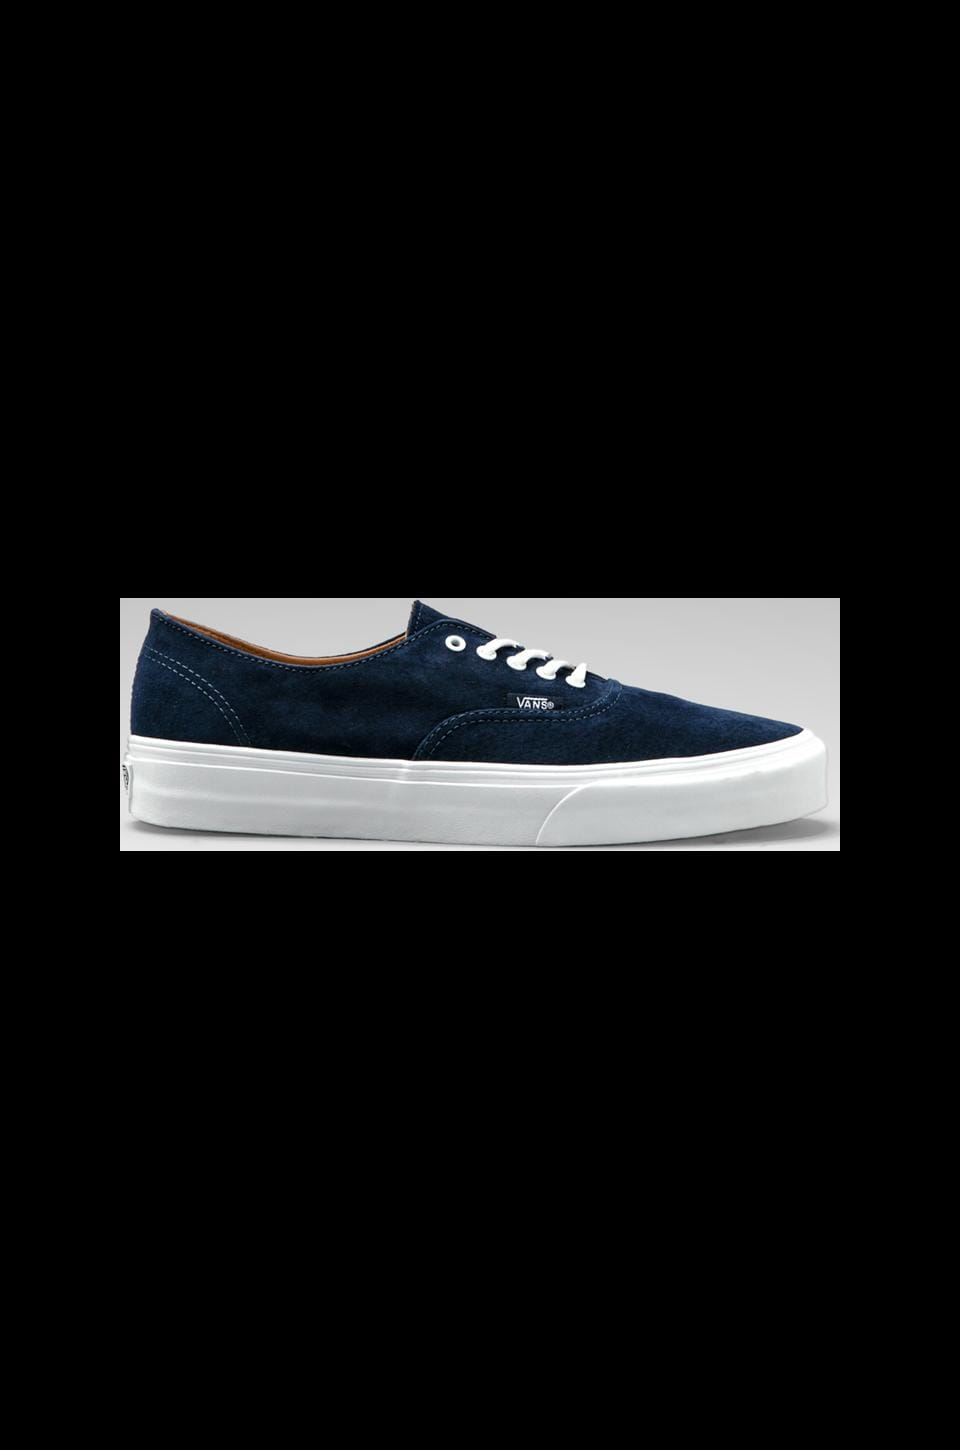 Vans California Authentic Decon Buck in Dress Blues